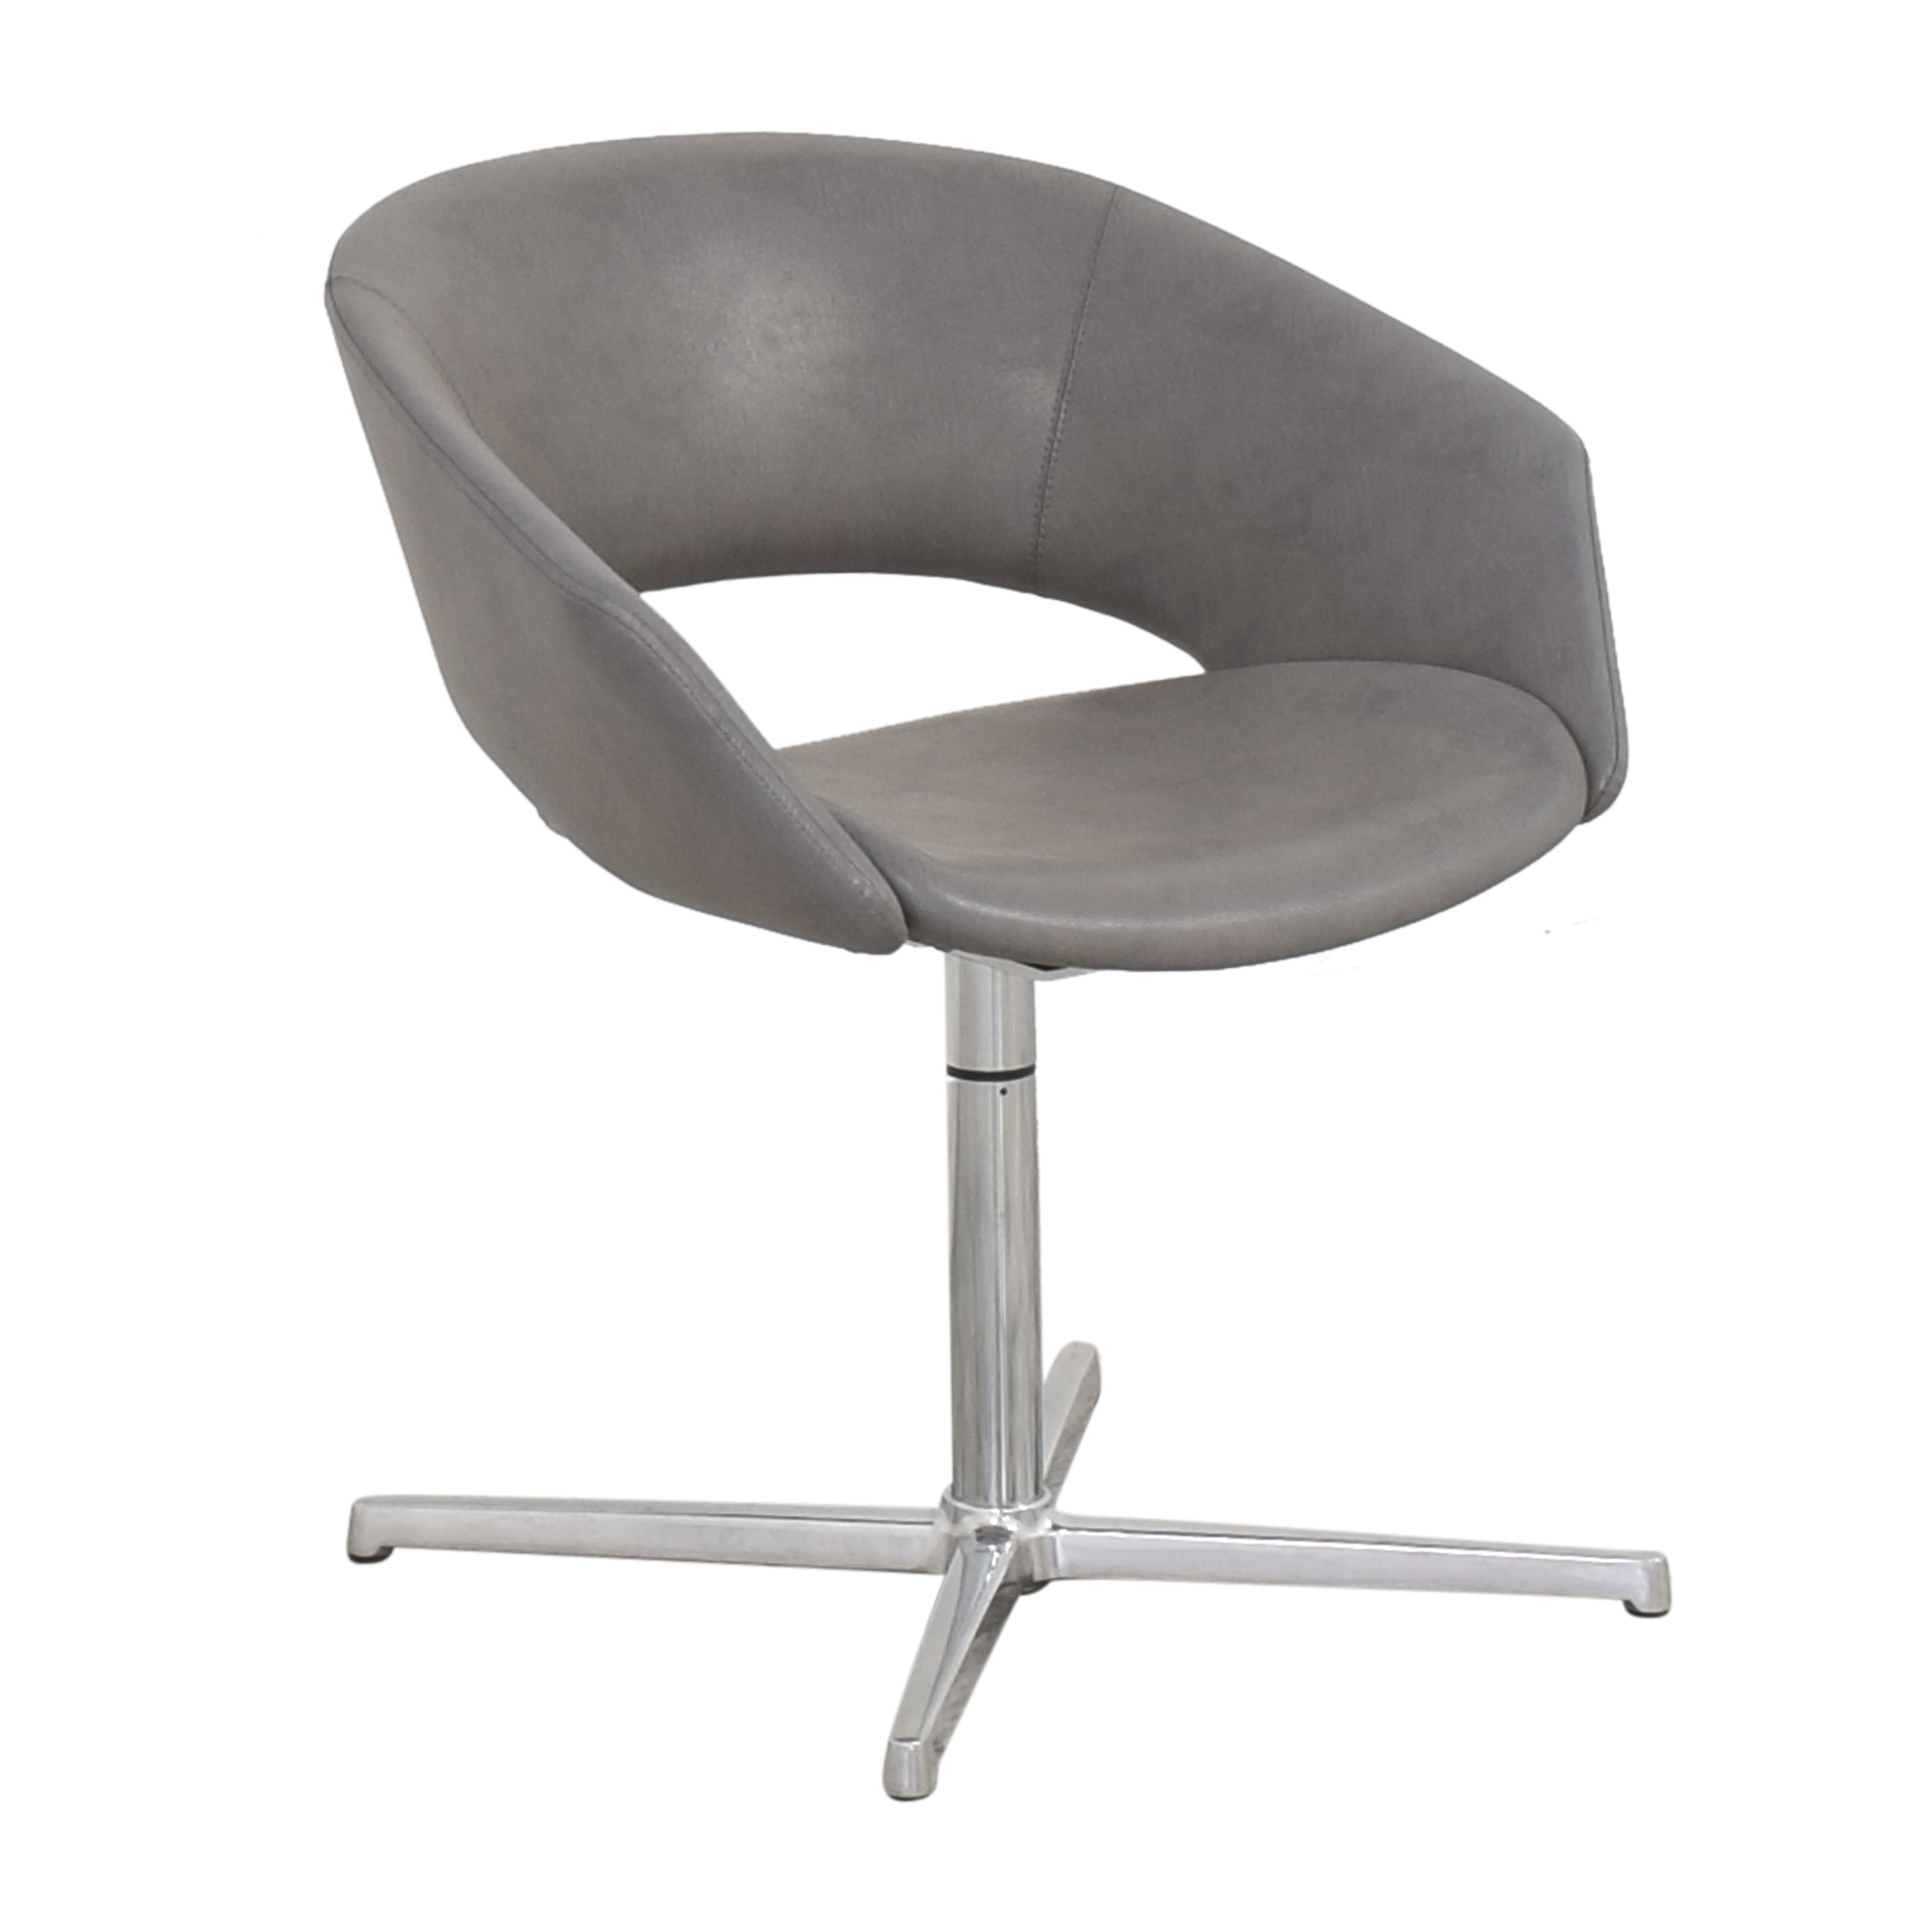 Leland International Leland Mod Pedestal Swivel Chair dimensions